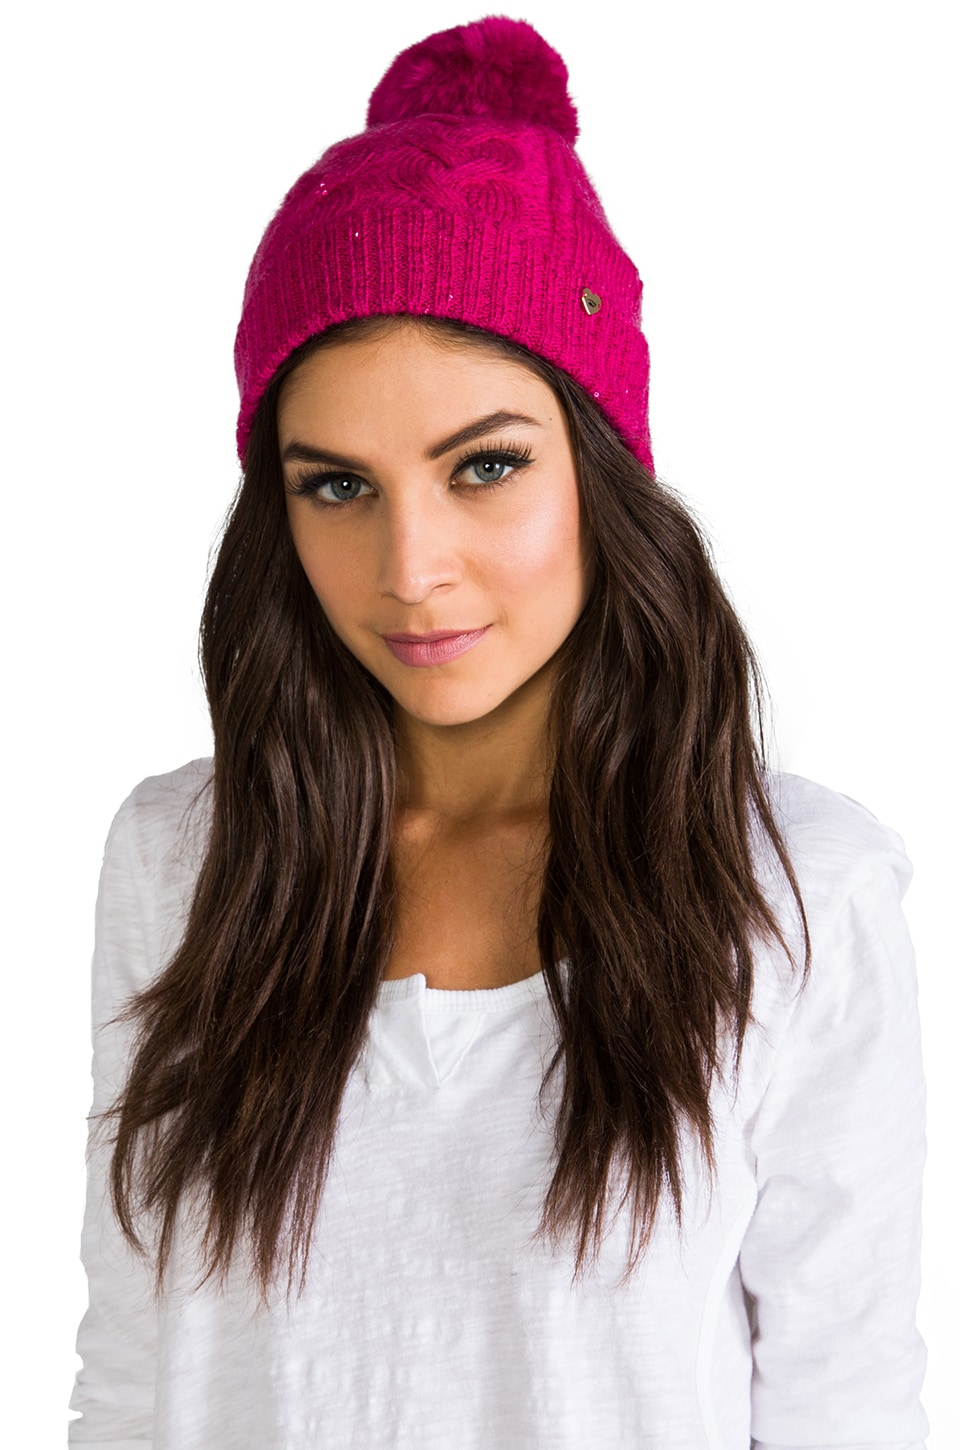 Juicy Couture Sparkle Cable Beanie with Faux Fur in Cashmere Rose